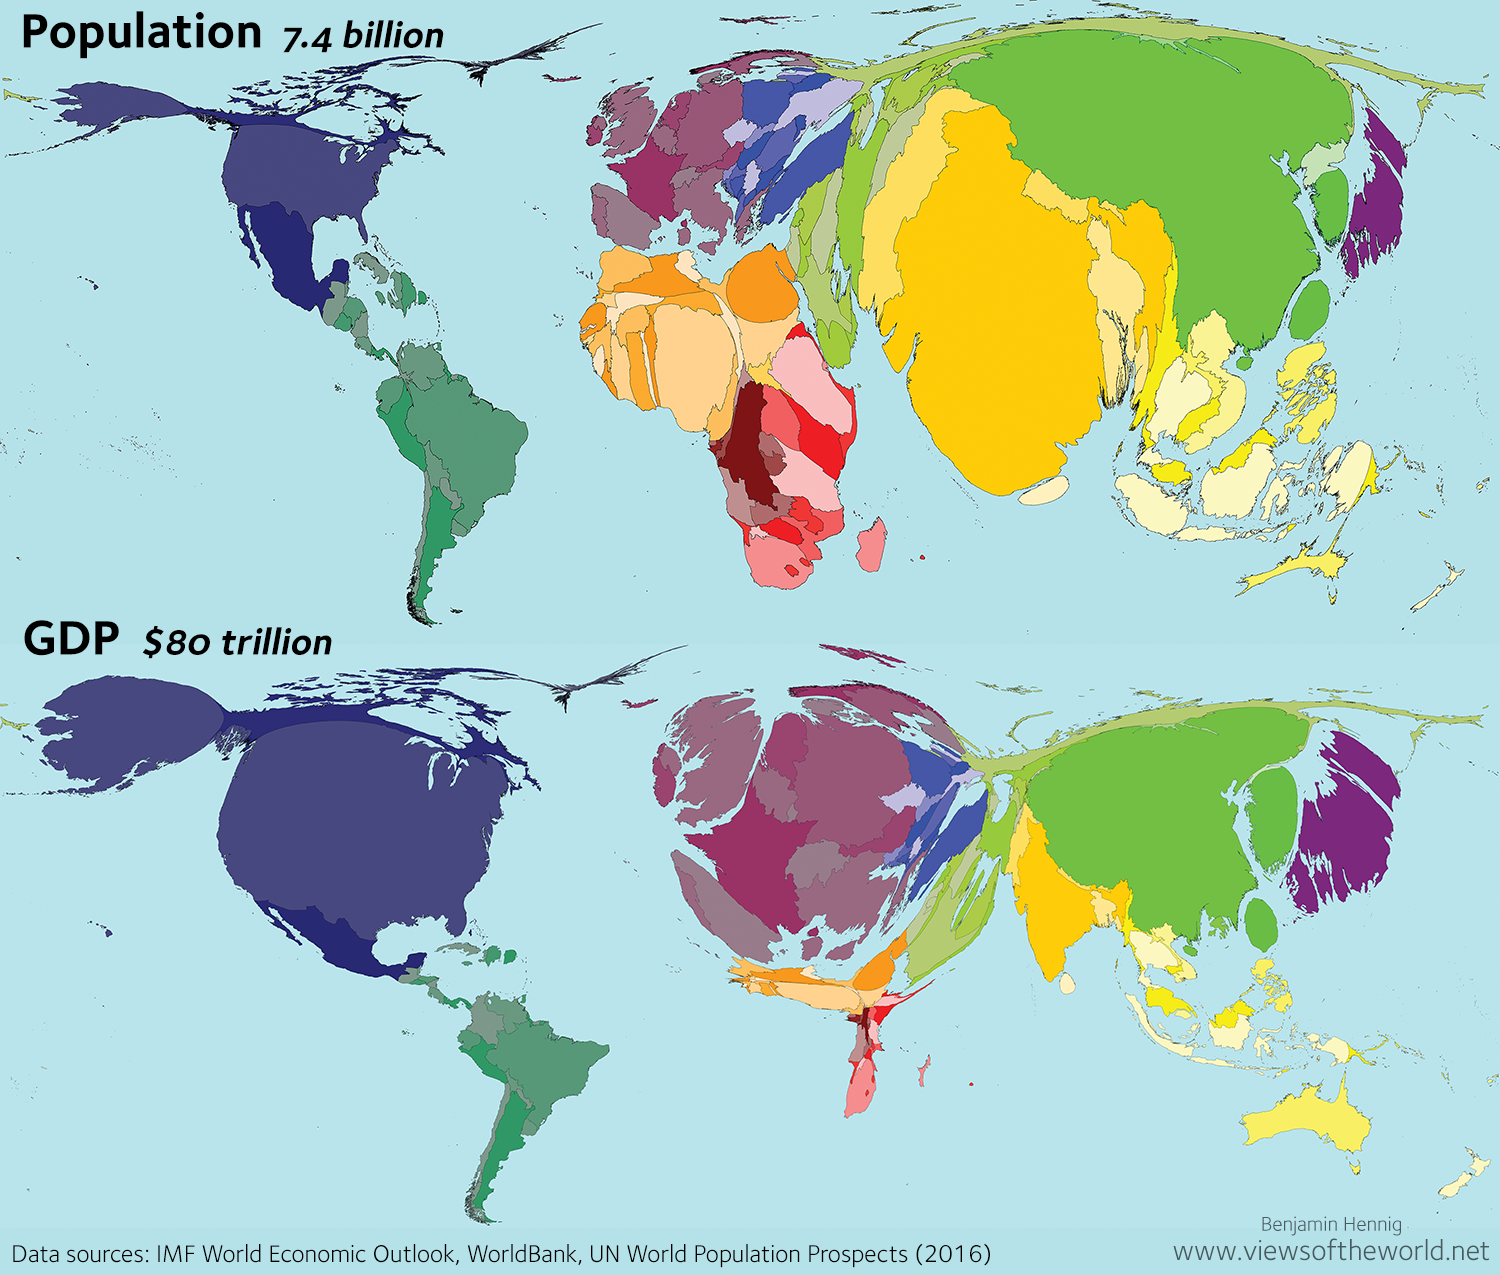 Cartogram of World Population and Global GDP